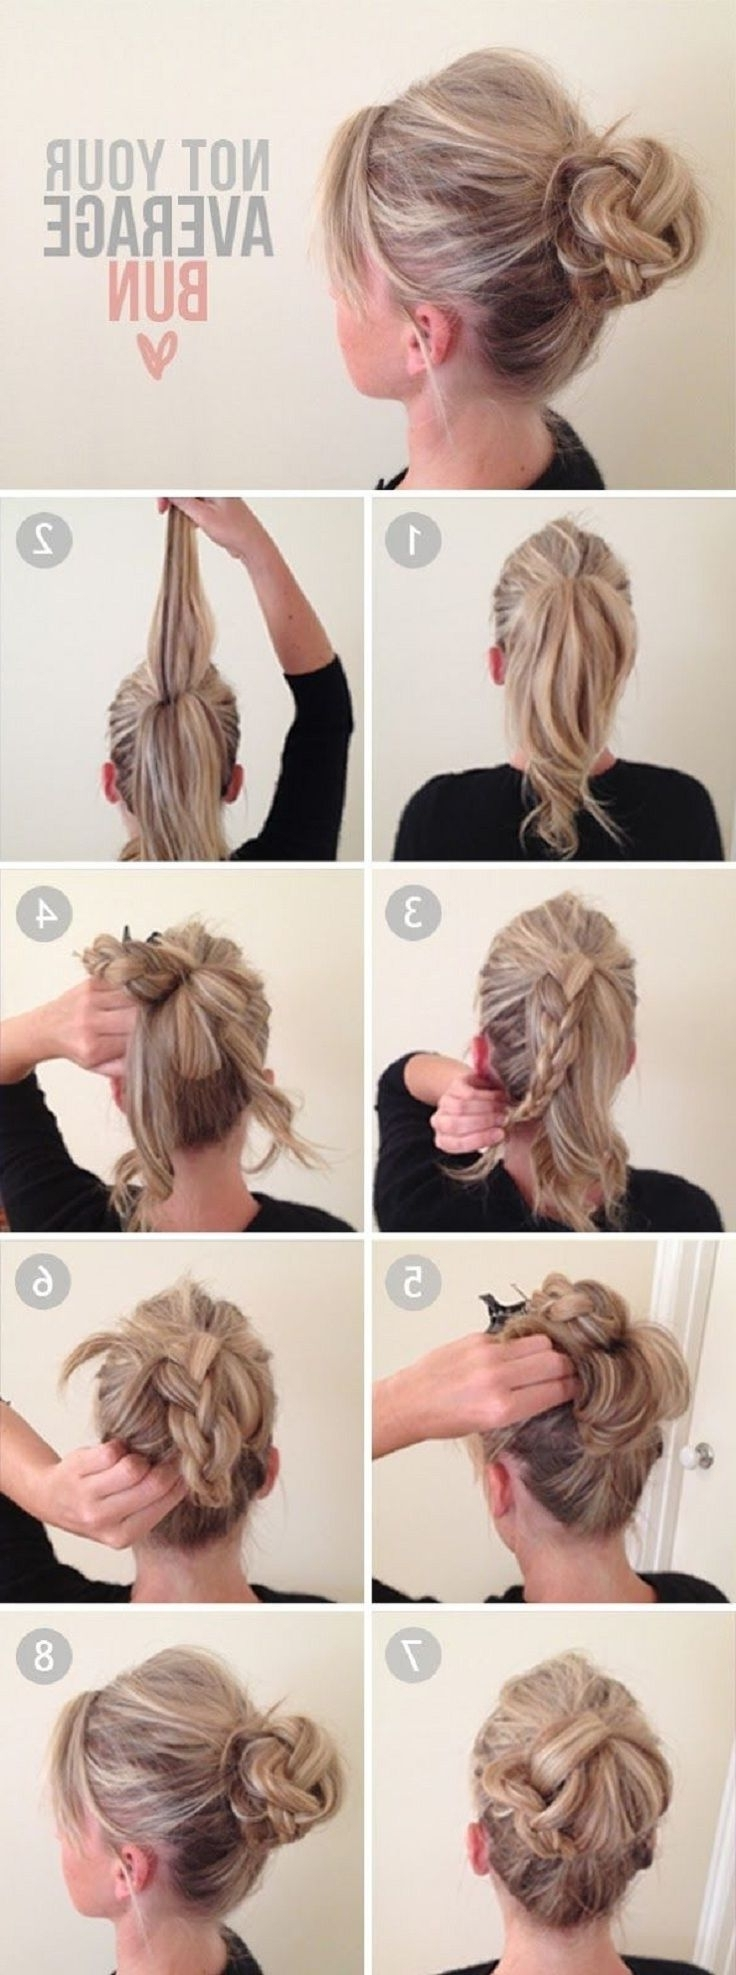 Trendy Blonde Ponytails With Double Braid In 14 Amazing Double Braid Bun Hairstyles – Pretty Designs (View 13 of 20)